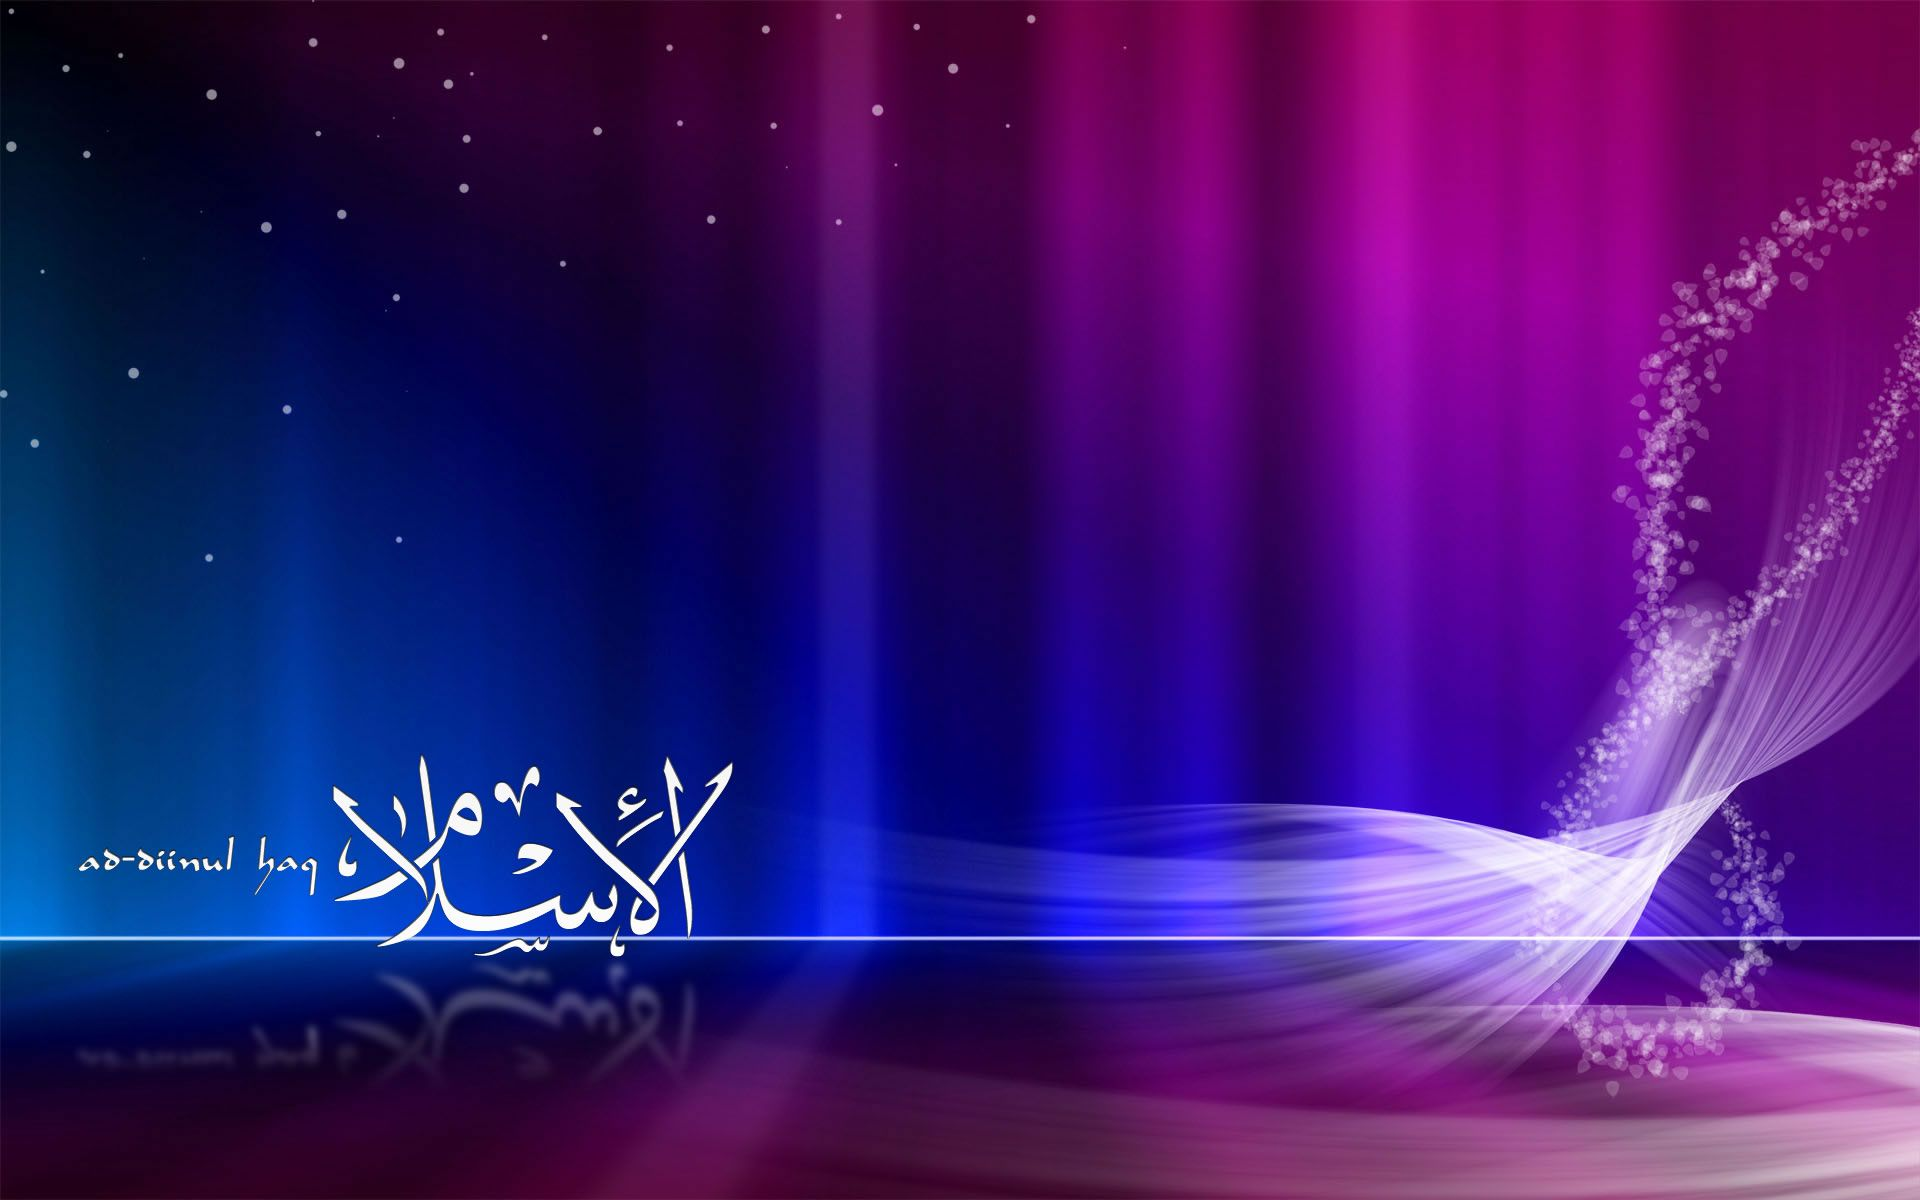 Islamic Wallpaper For PC Free Download